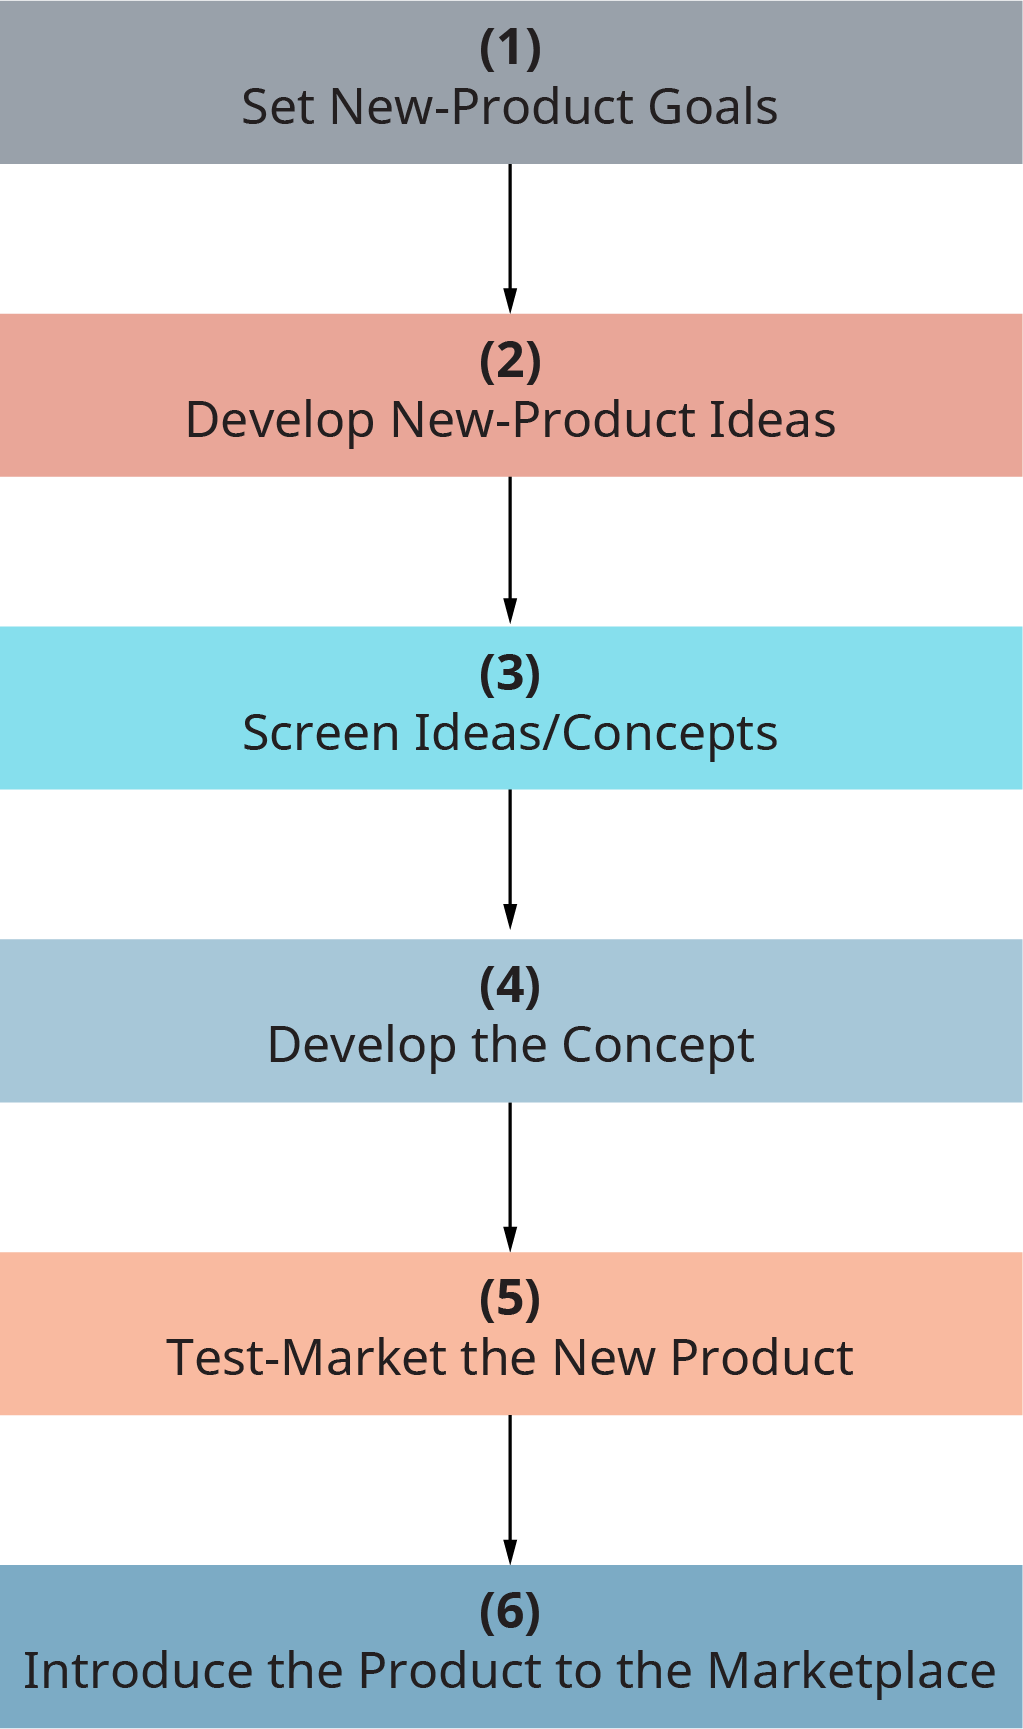 Each step flows into the next. Step 1, set new product goals. Step 2, develop new product ideas. Step 3, Screen ideas slash concepts. Step 4, develop the concept. Step 5, test market the new product. Step 6, introduce the product to the marketplace.